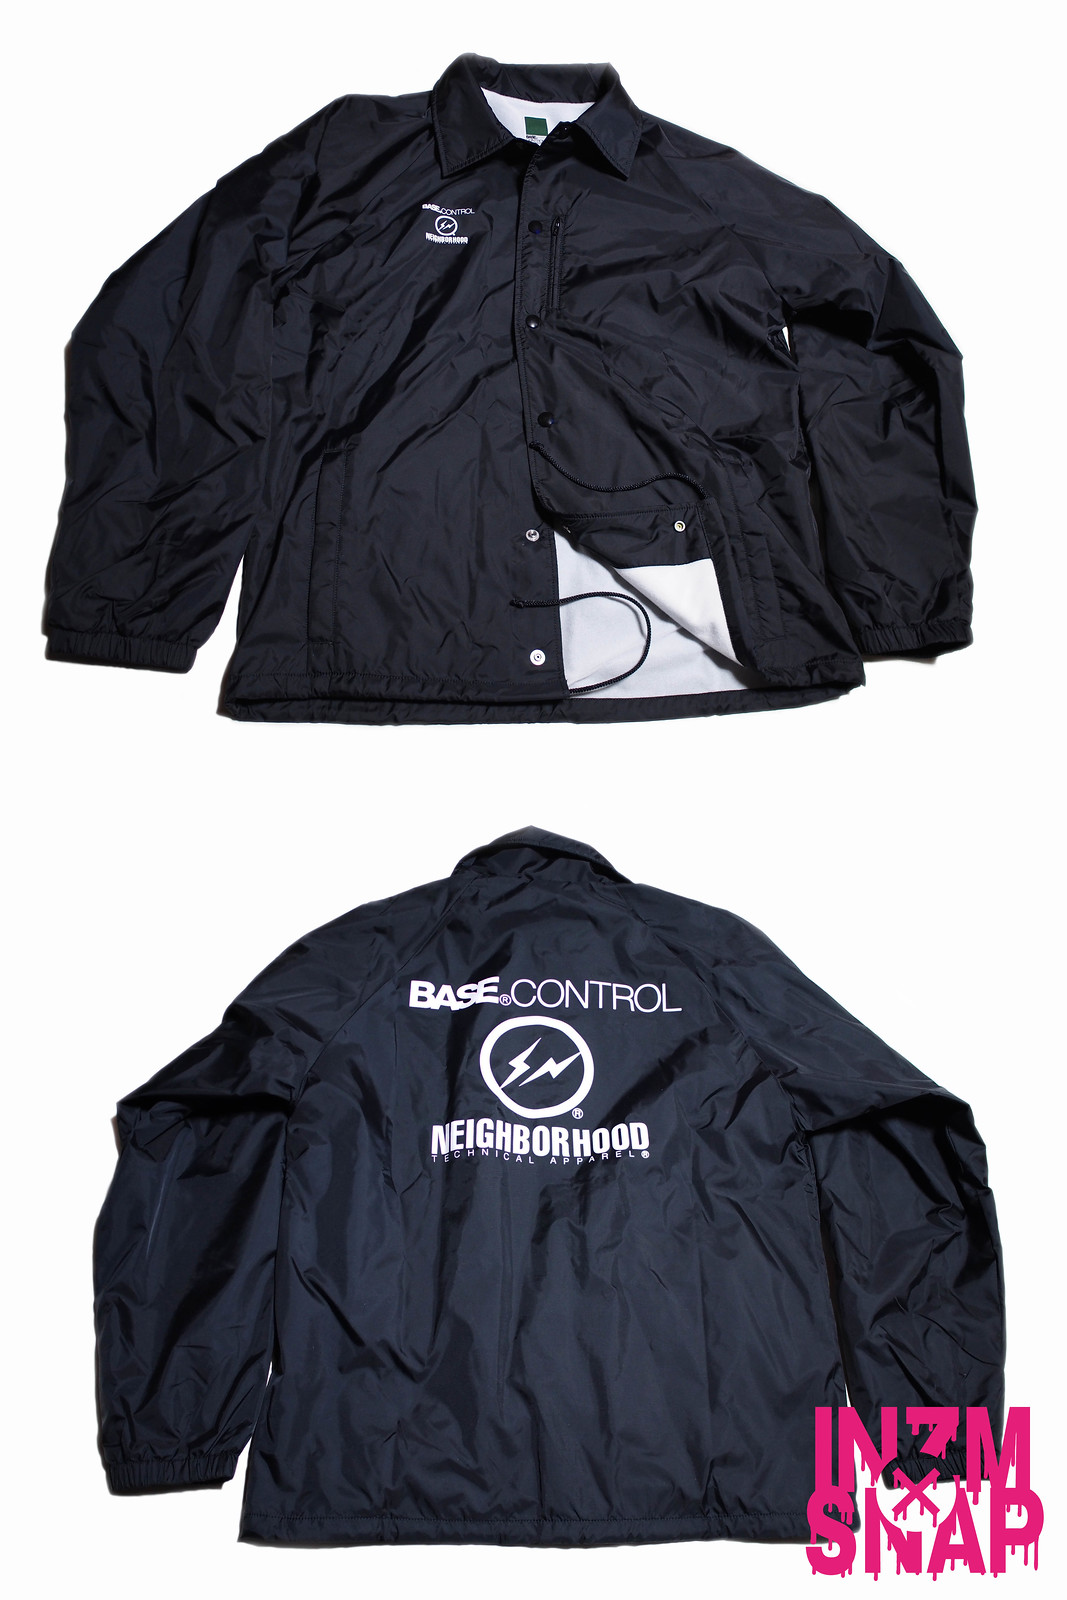 BASE CONTROL × fragment design × NEIGHBORHOOD